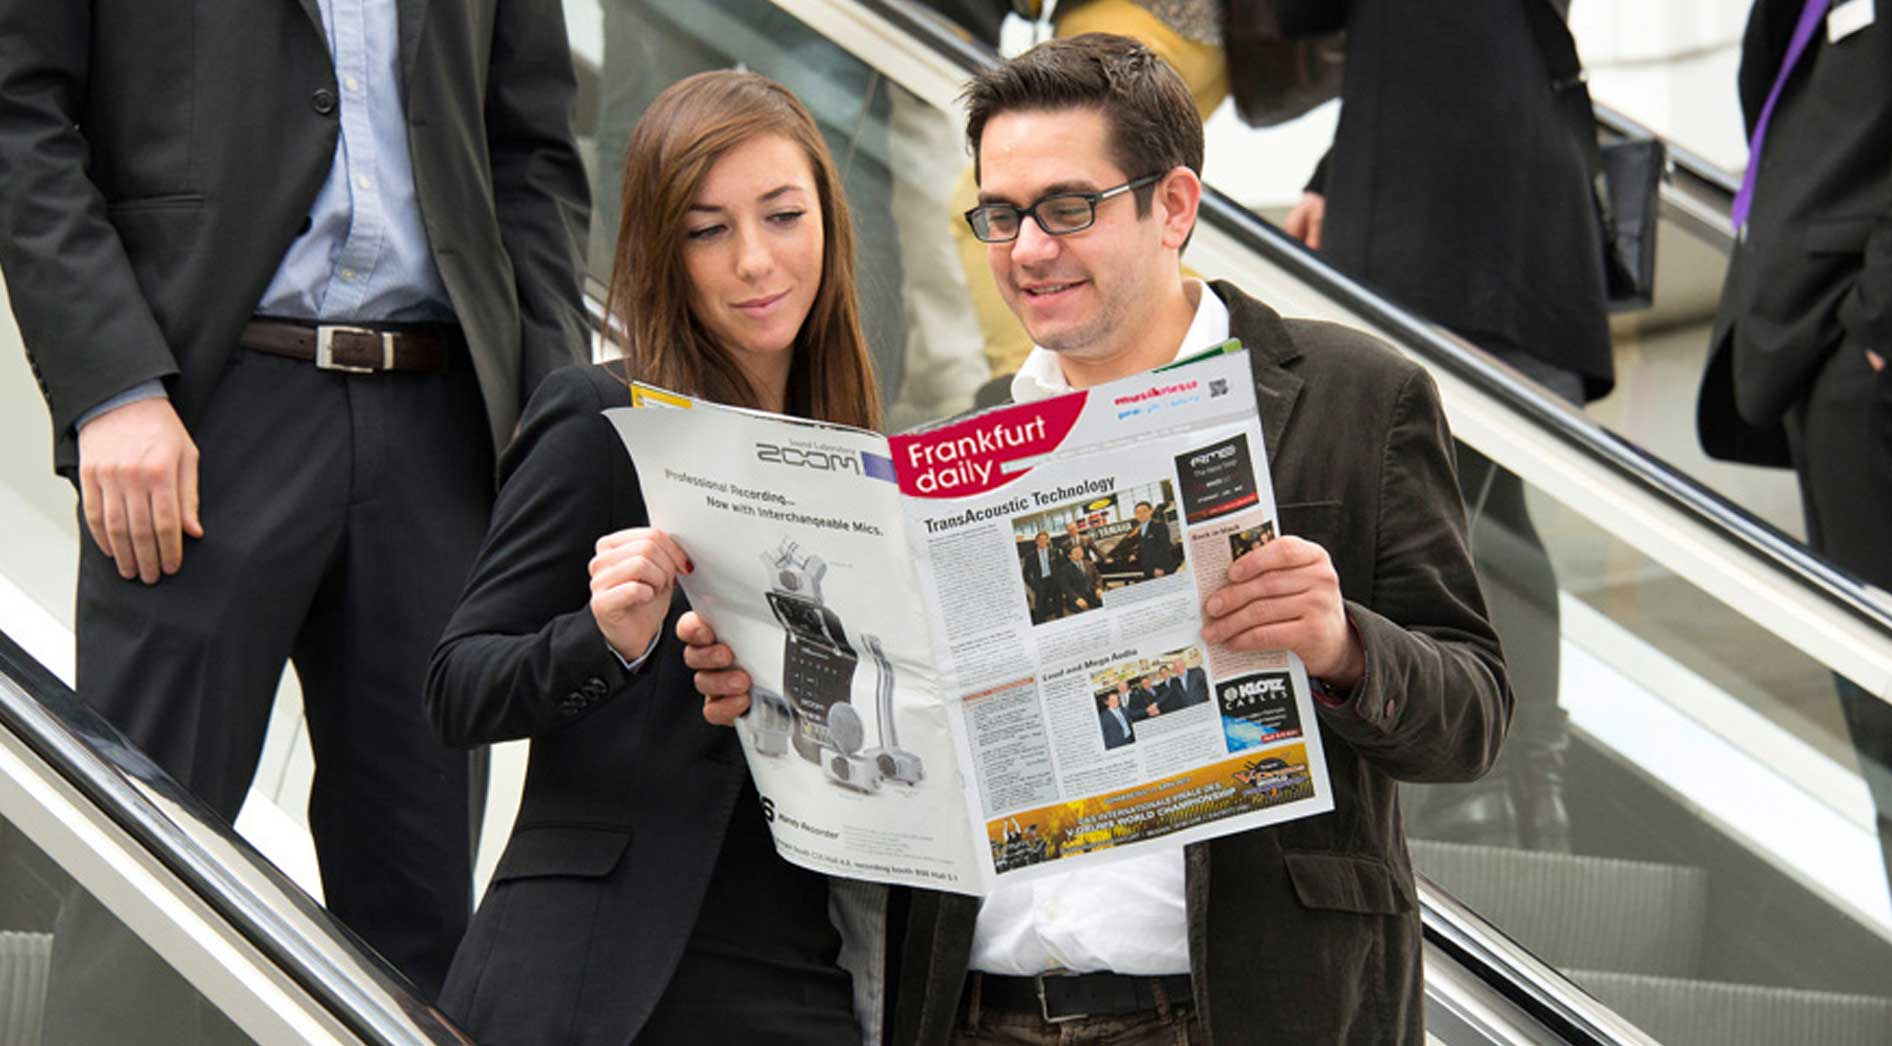 visitors are reading the Frankfurt daily newspaper at Musikmesse